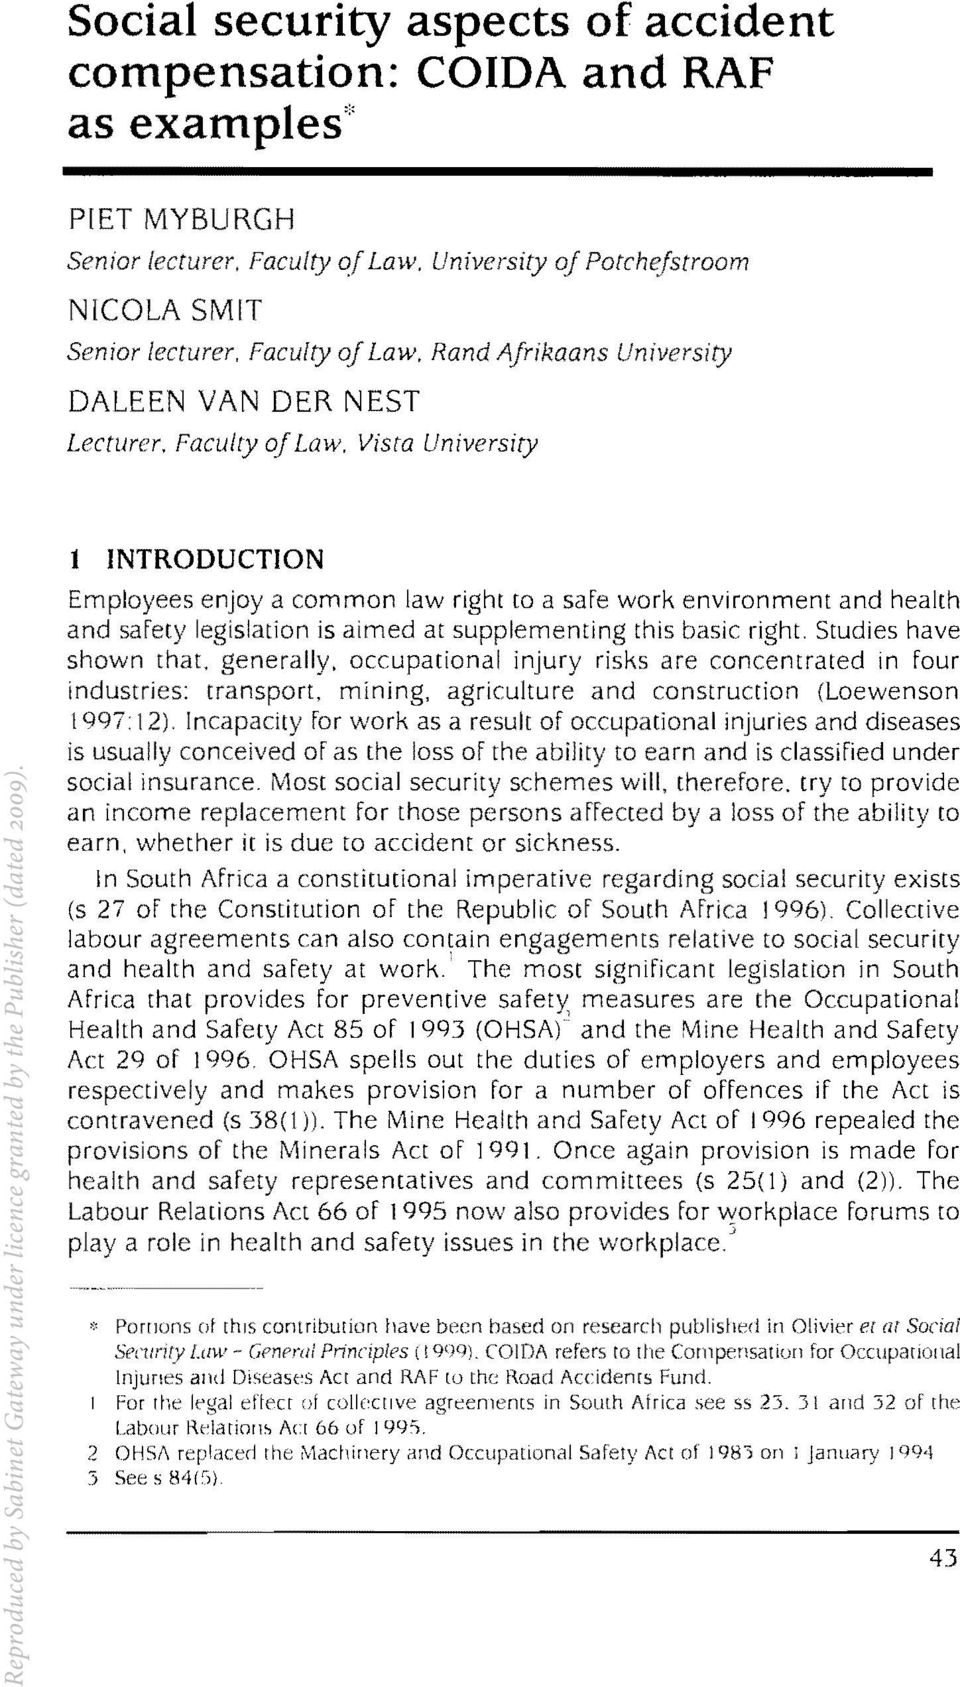 Vista University 1 INTRODUCTION enjoy a common law right to a safe work environment and health legislation is aimed at supplementing this basic right. Studies have shown that, generally.